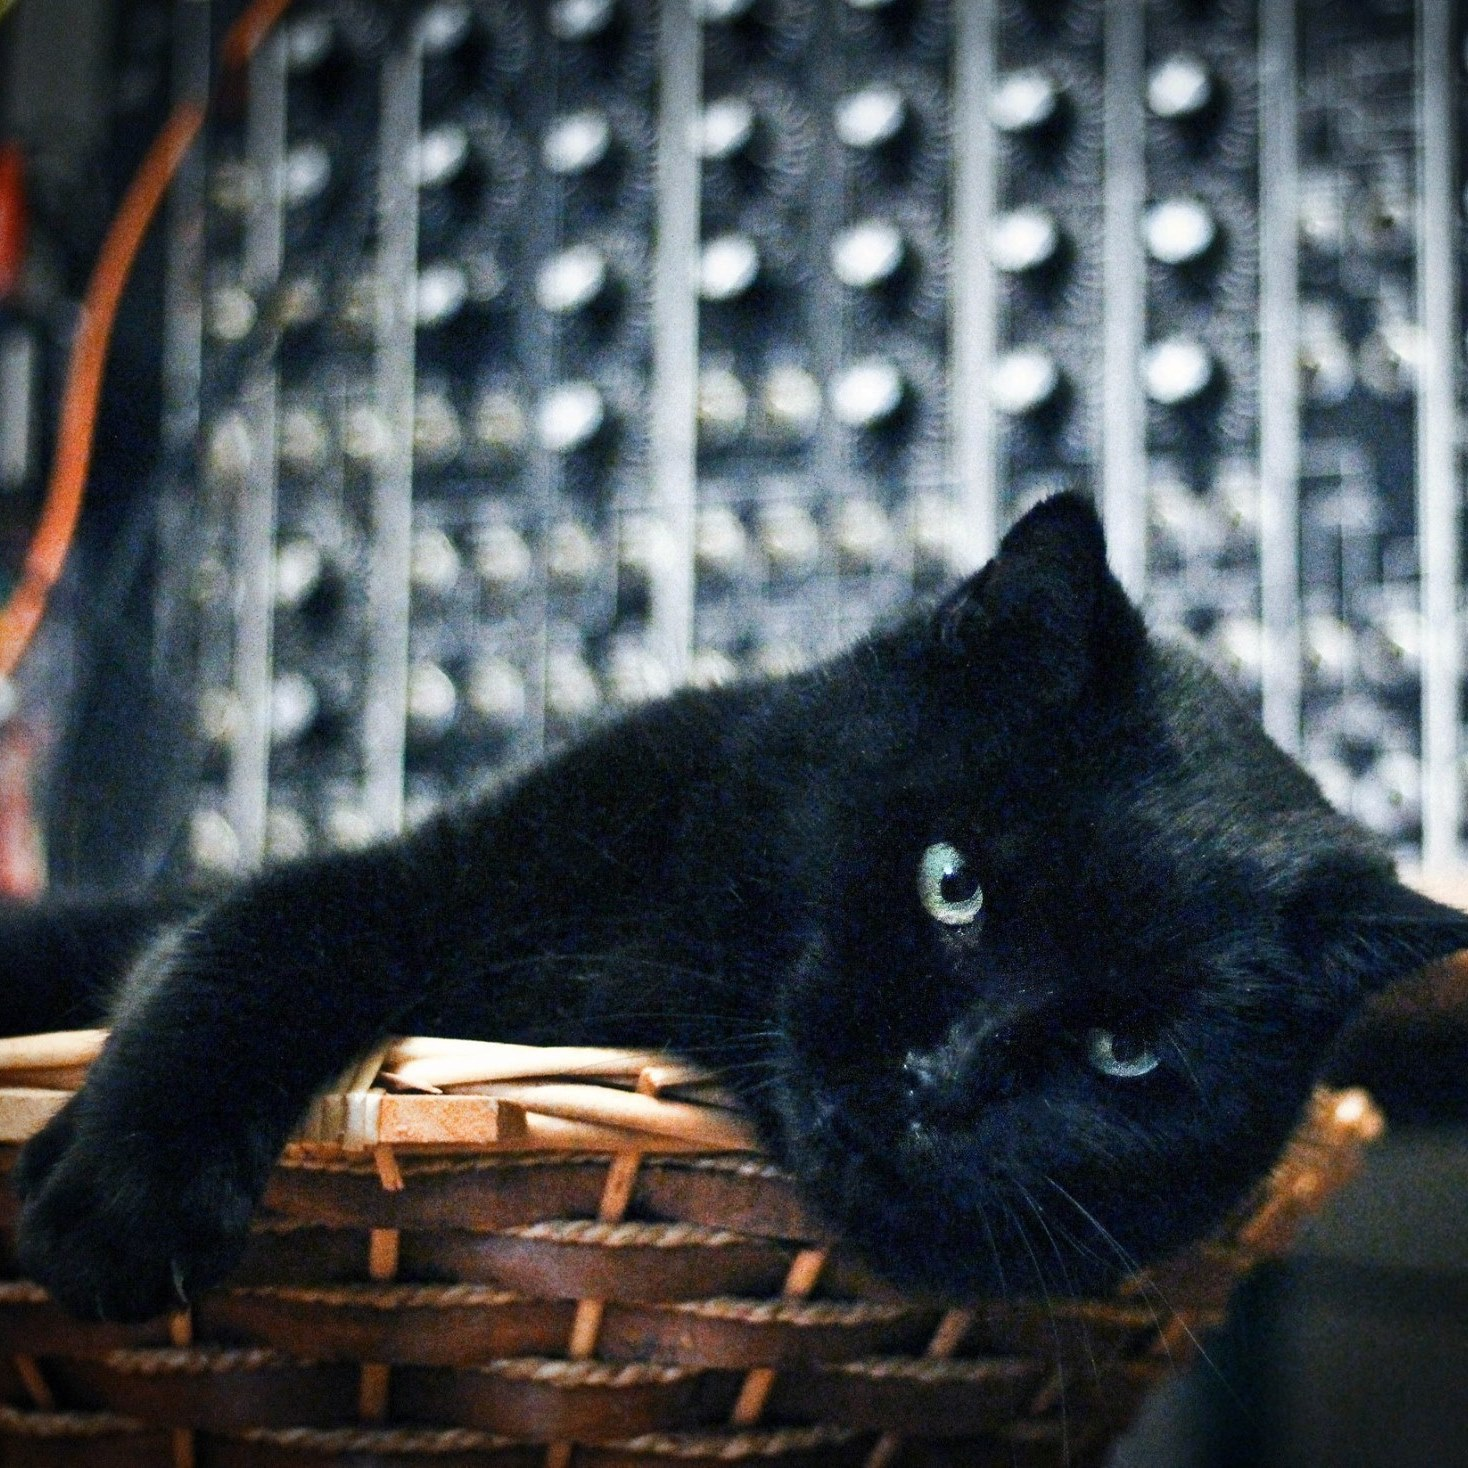 CatSynth Pic:  Black Cat and Modular Synth